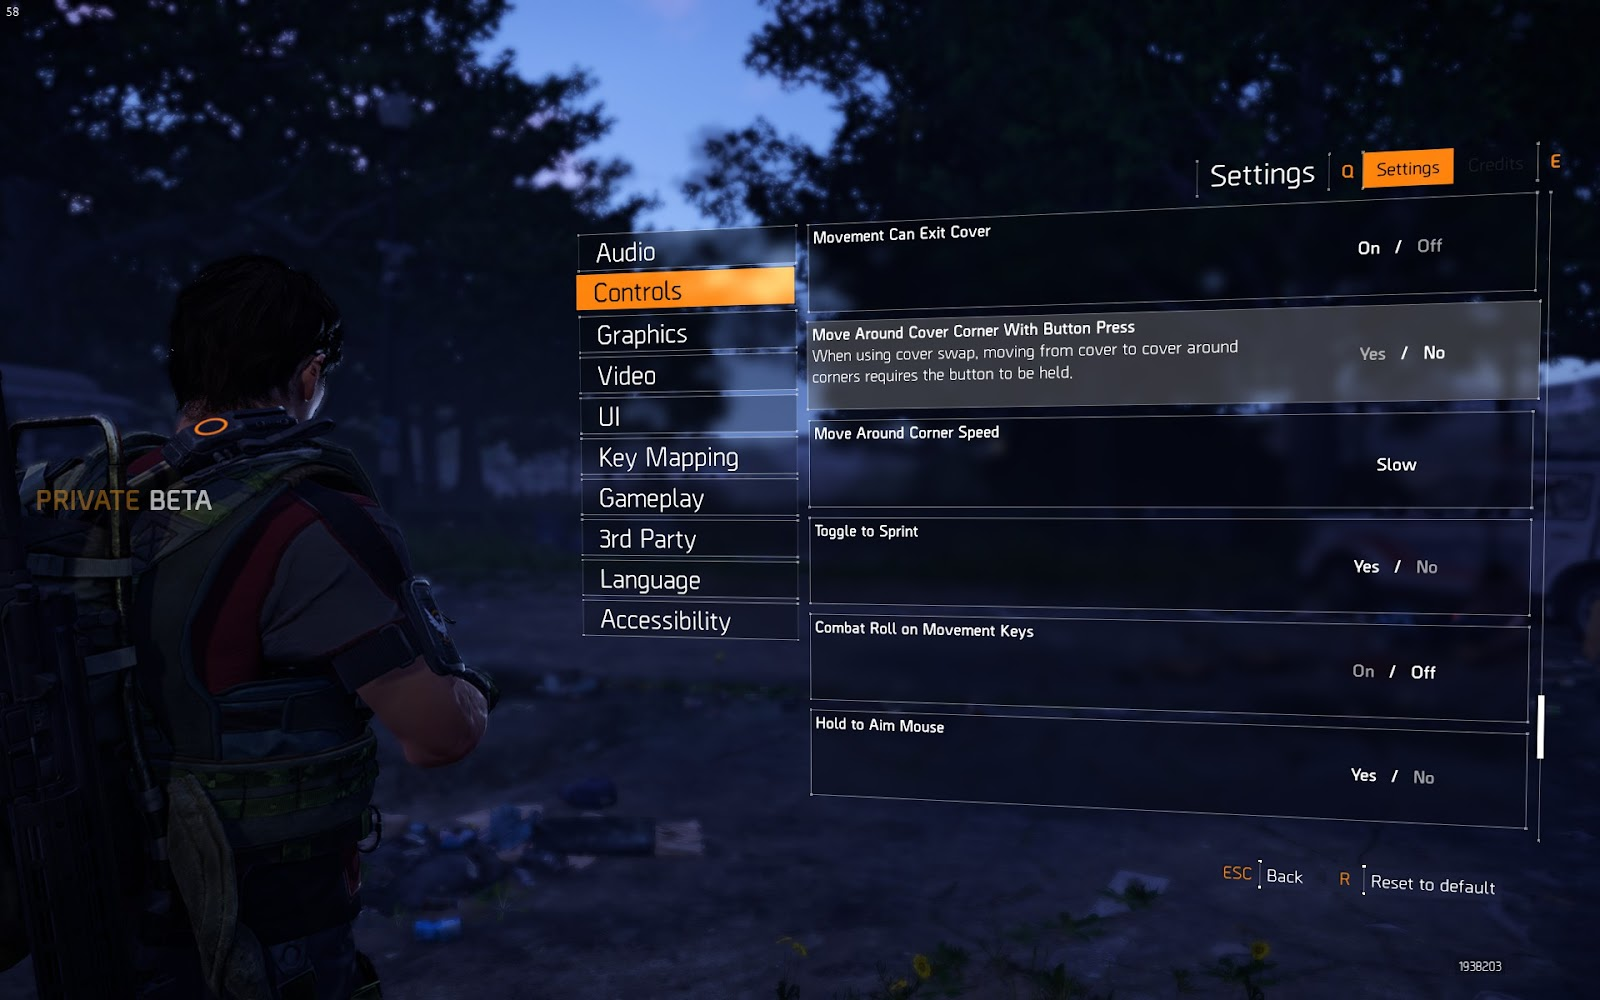 Mouse and gamepad sensitivity settings, hold and toggle options for aim and sprint, axis inversion, vibration on/off, aim assist and more.